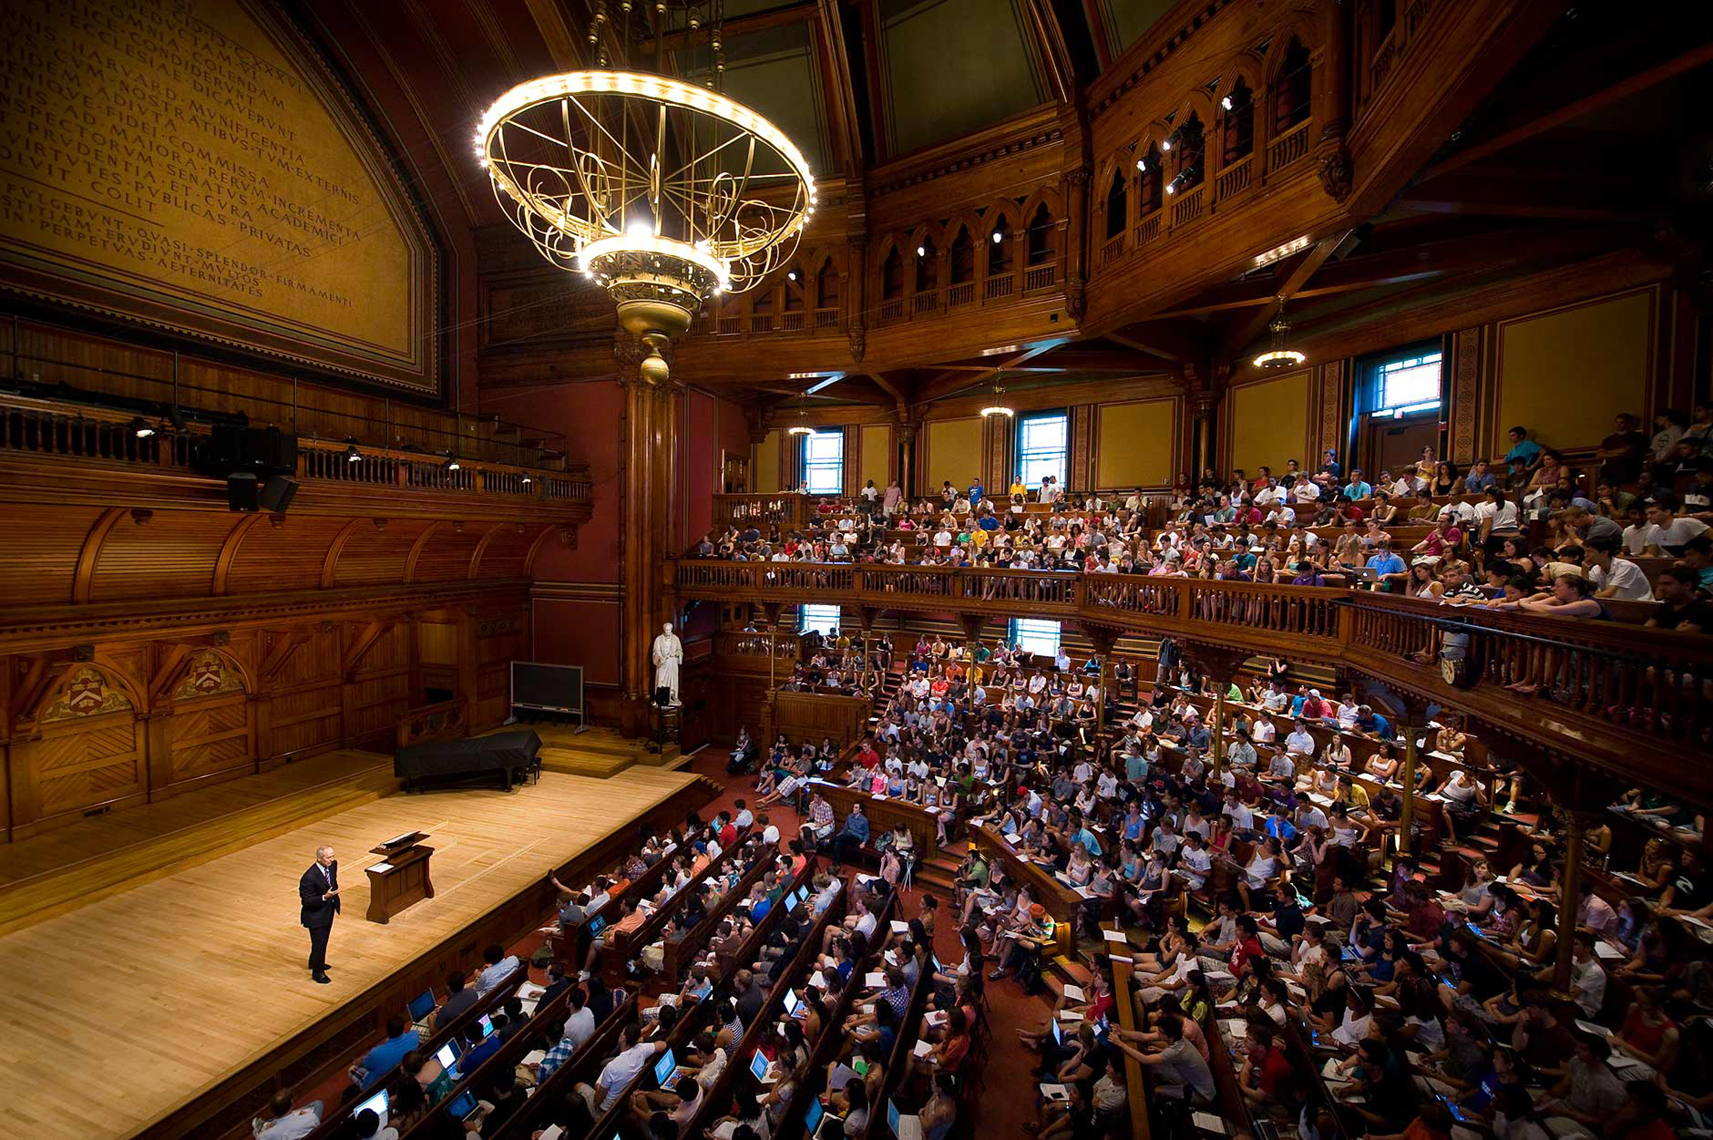 Professor Michael Sandel lecturing at Sanders Theatre in Cambridge, MA